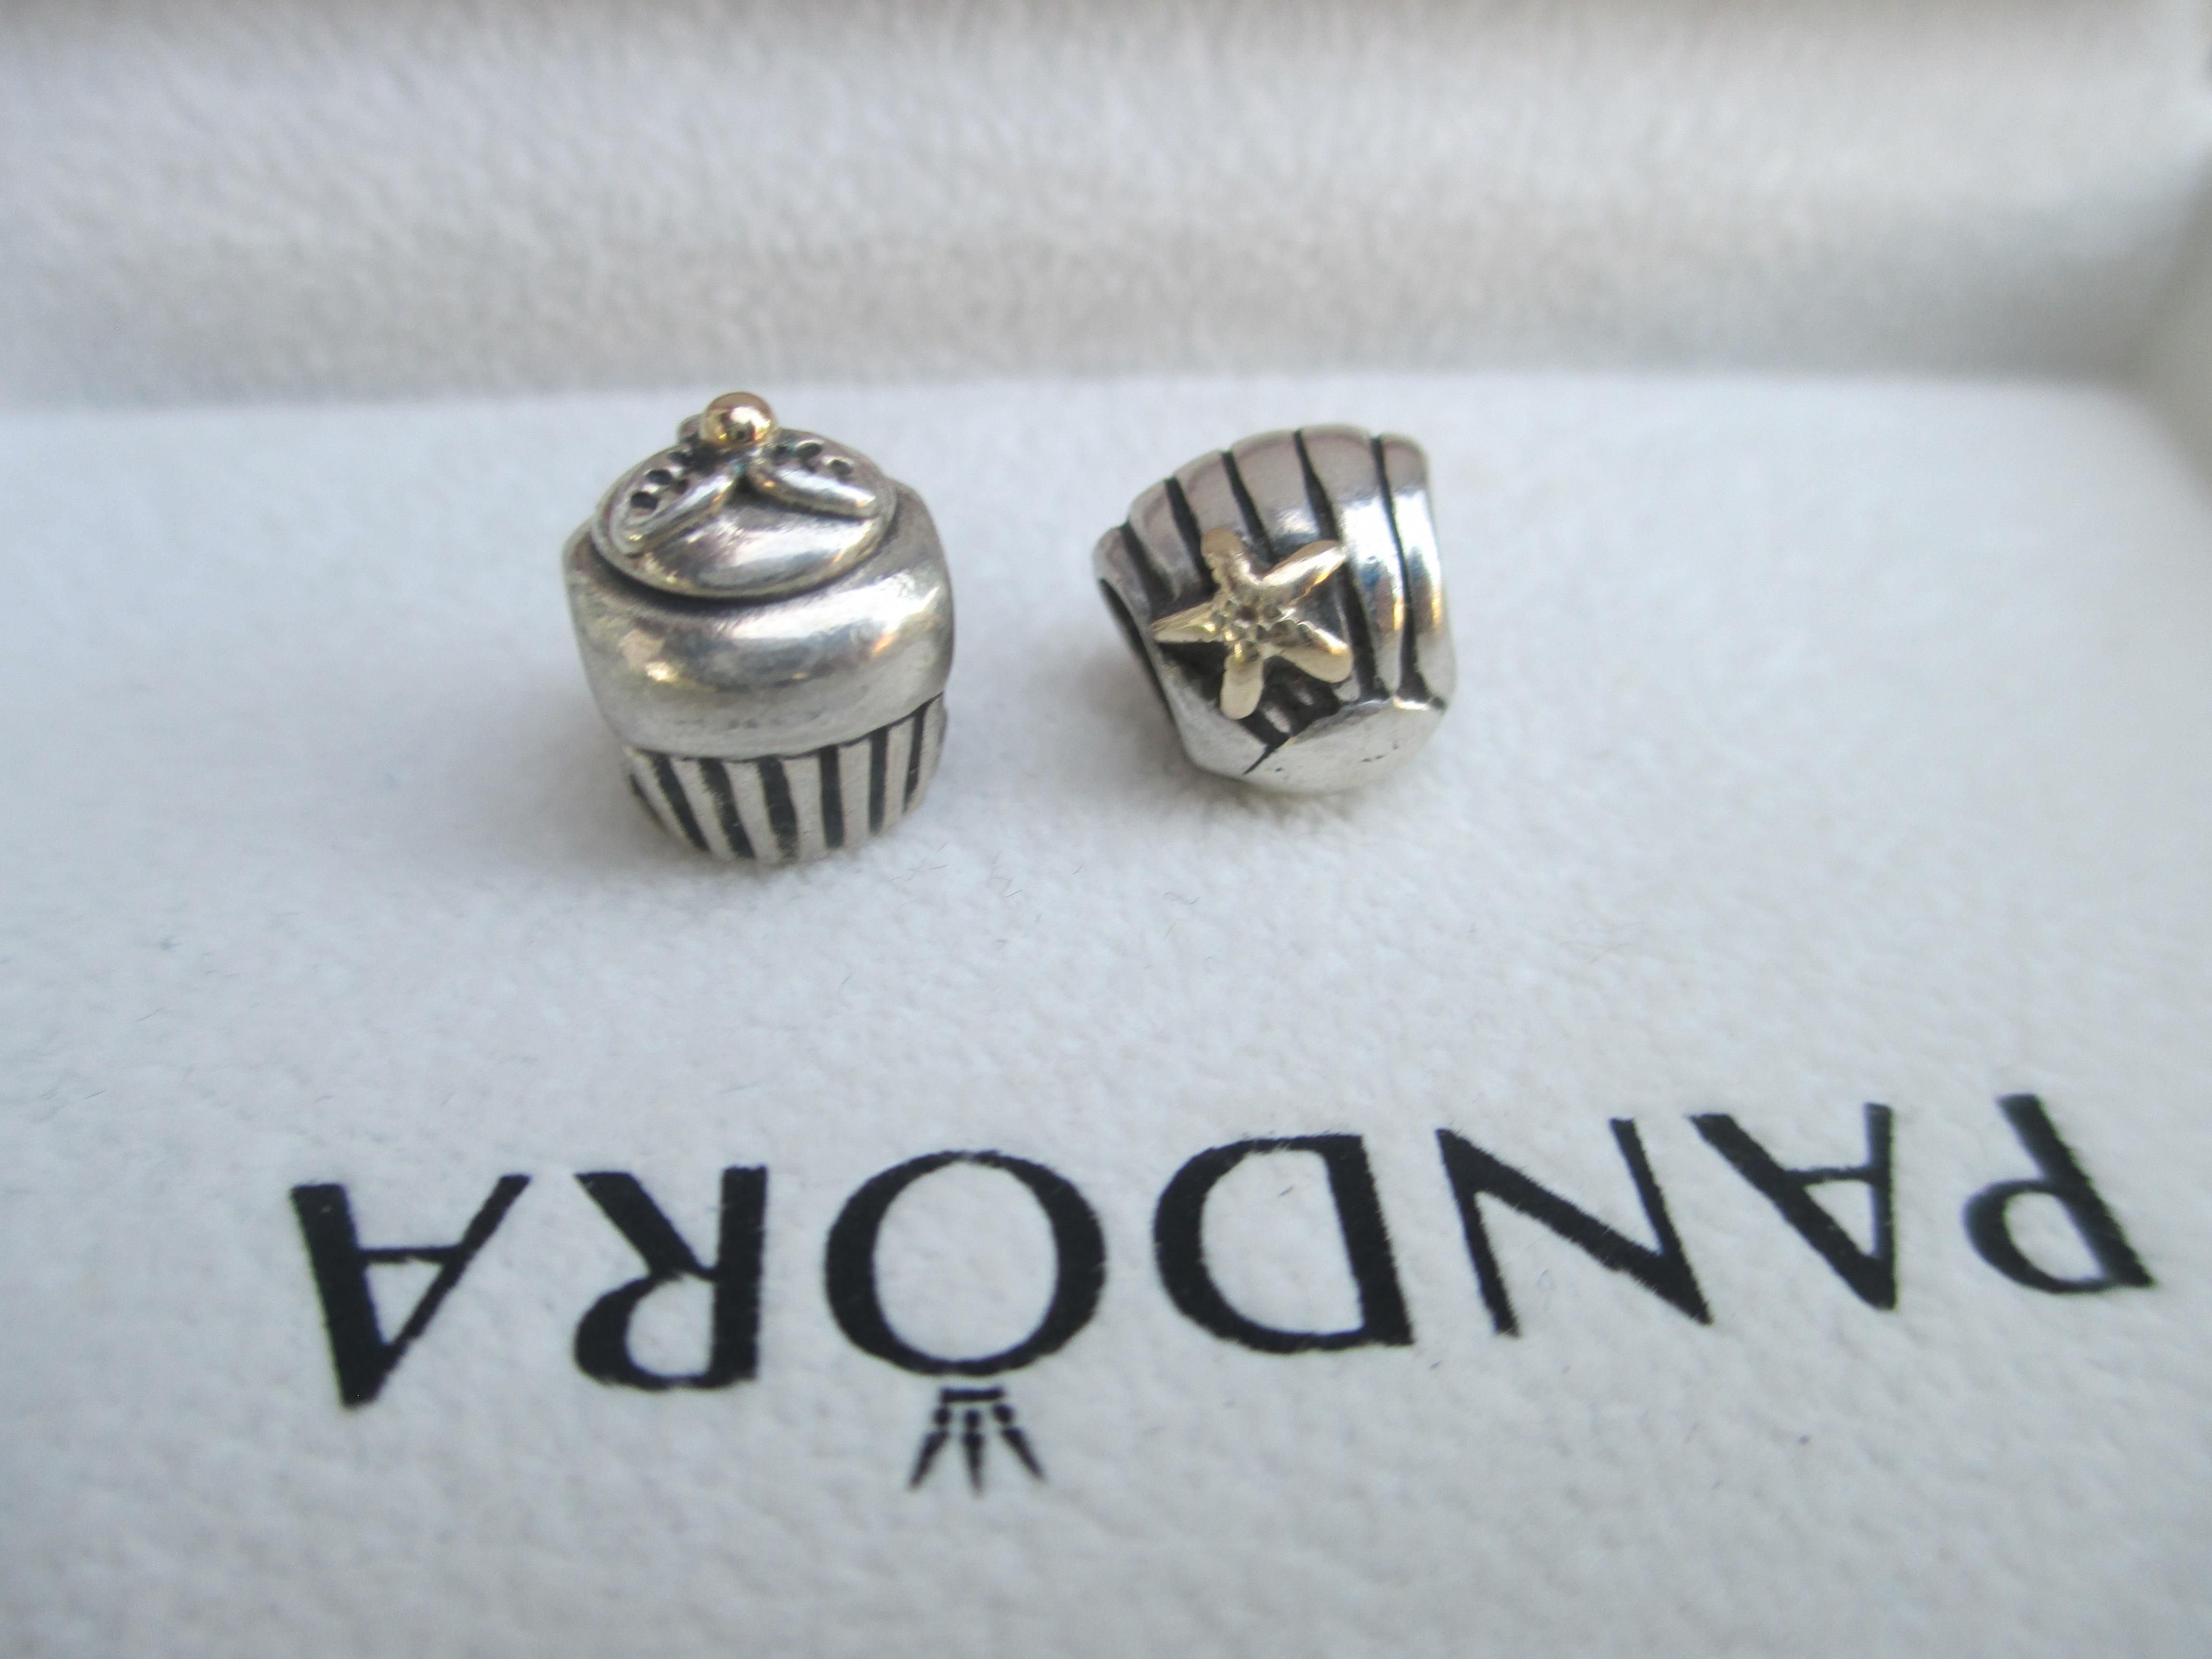 bd2460171 Sea Shells, Cupcakes, Pandora, Cufflinks, Beads, Gold, Silver, O